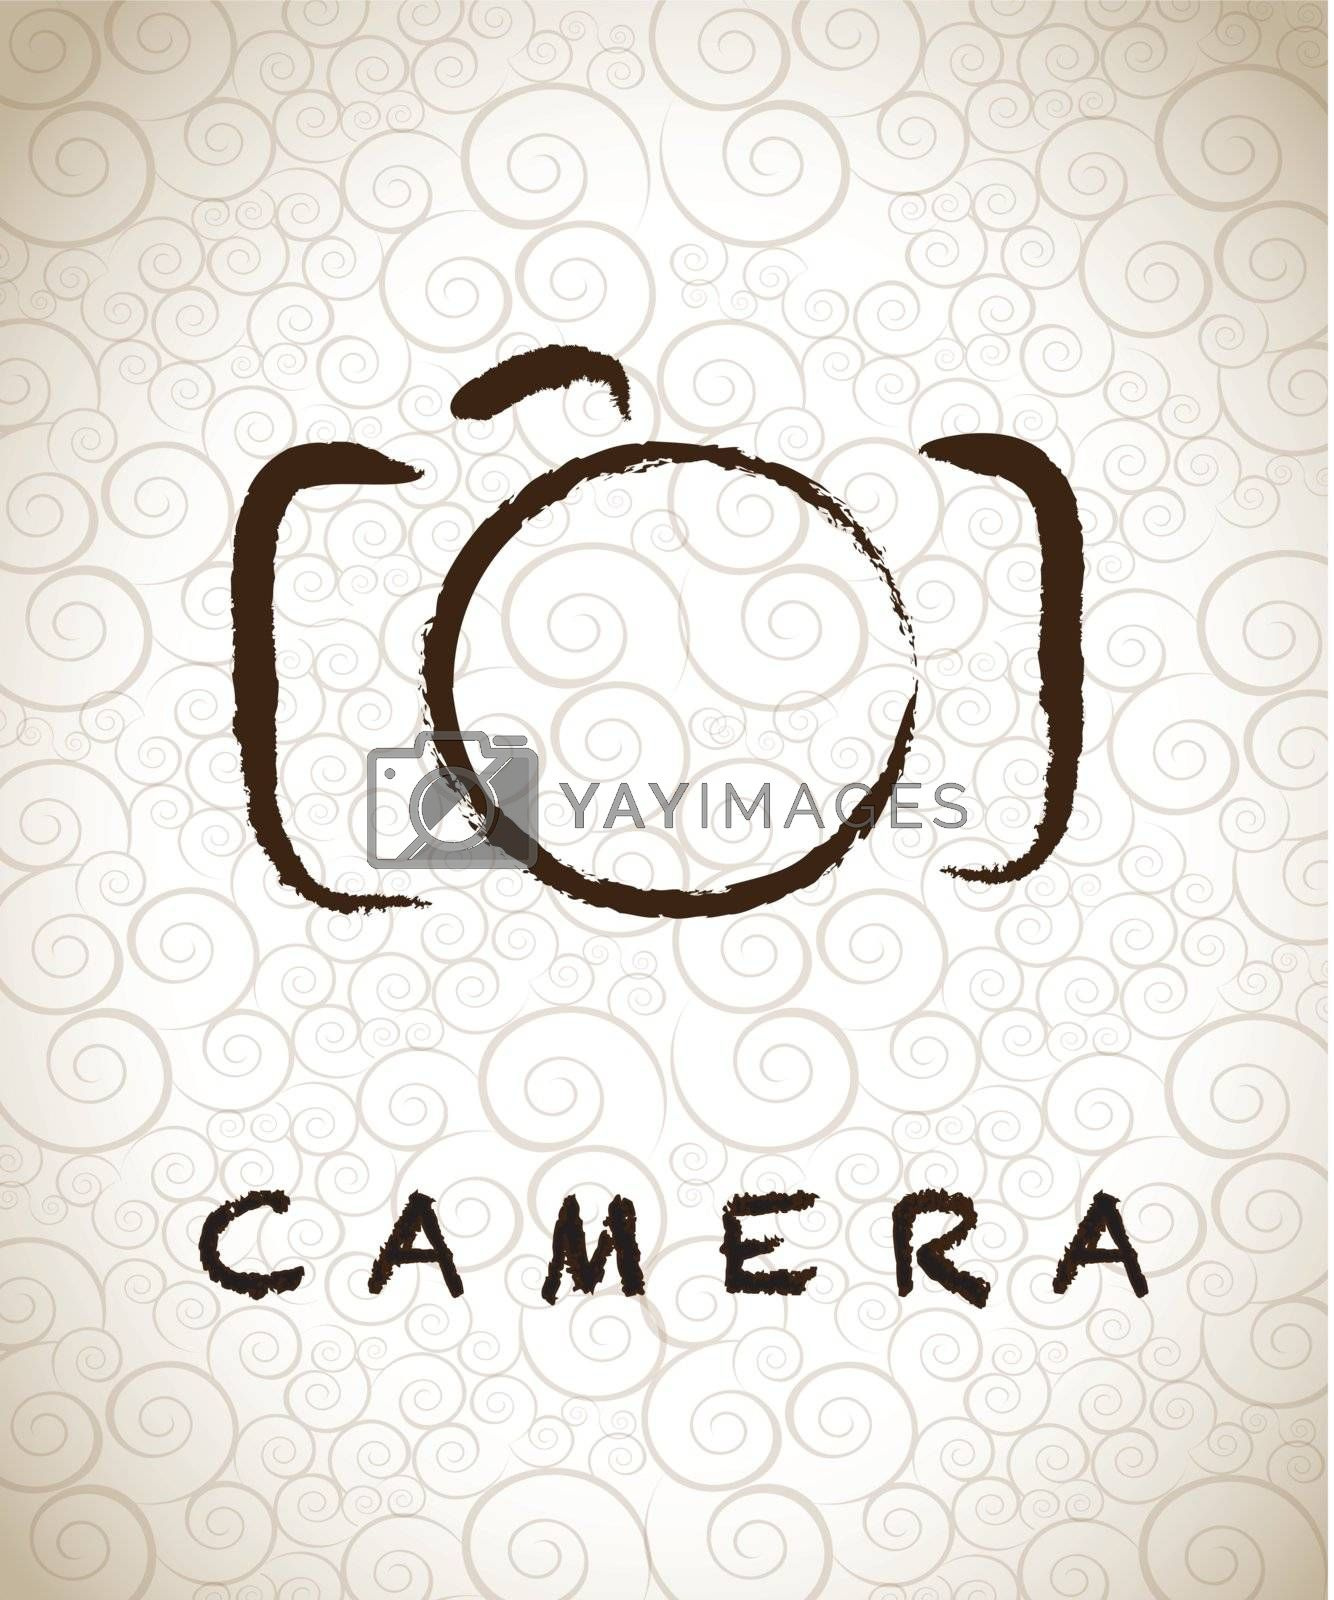 photographic camera drawn freehand over vintage background vector illustration